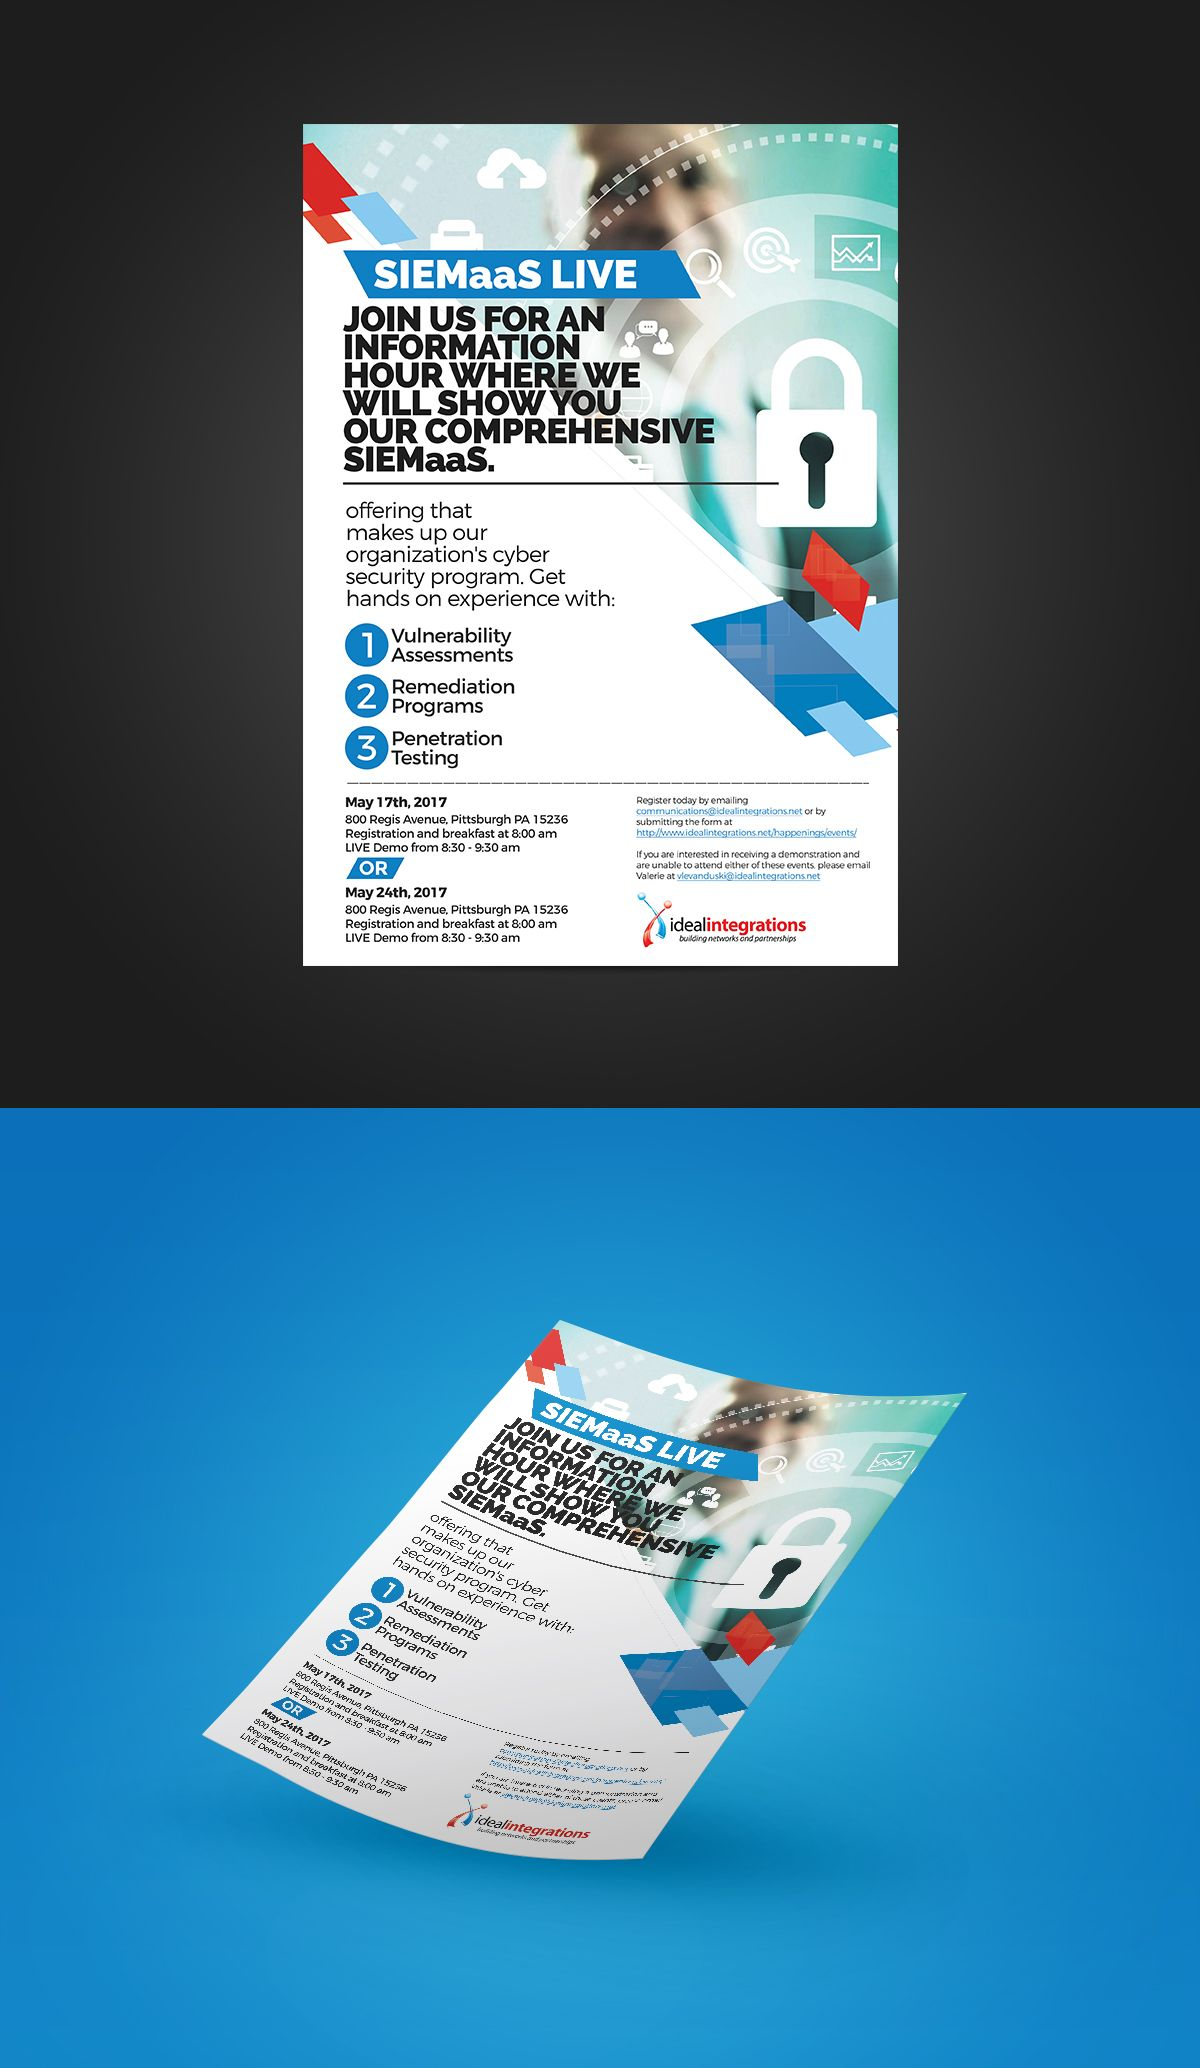 Flyers are one of the most versatile, effective and